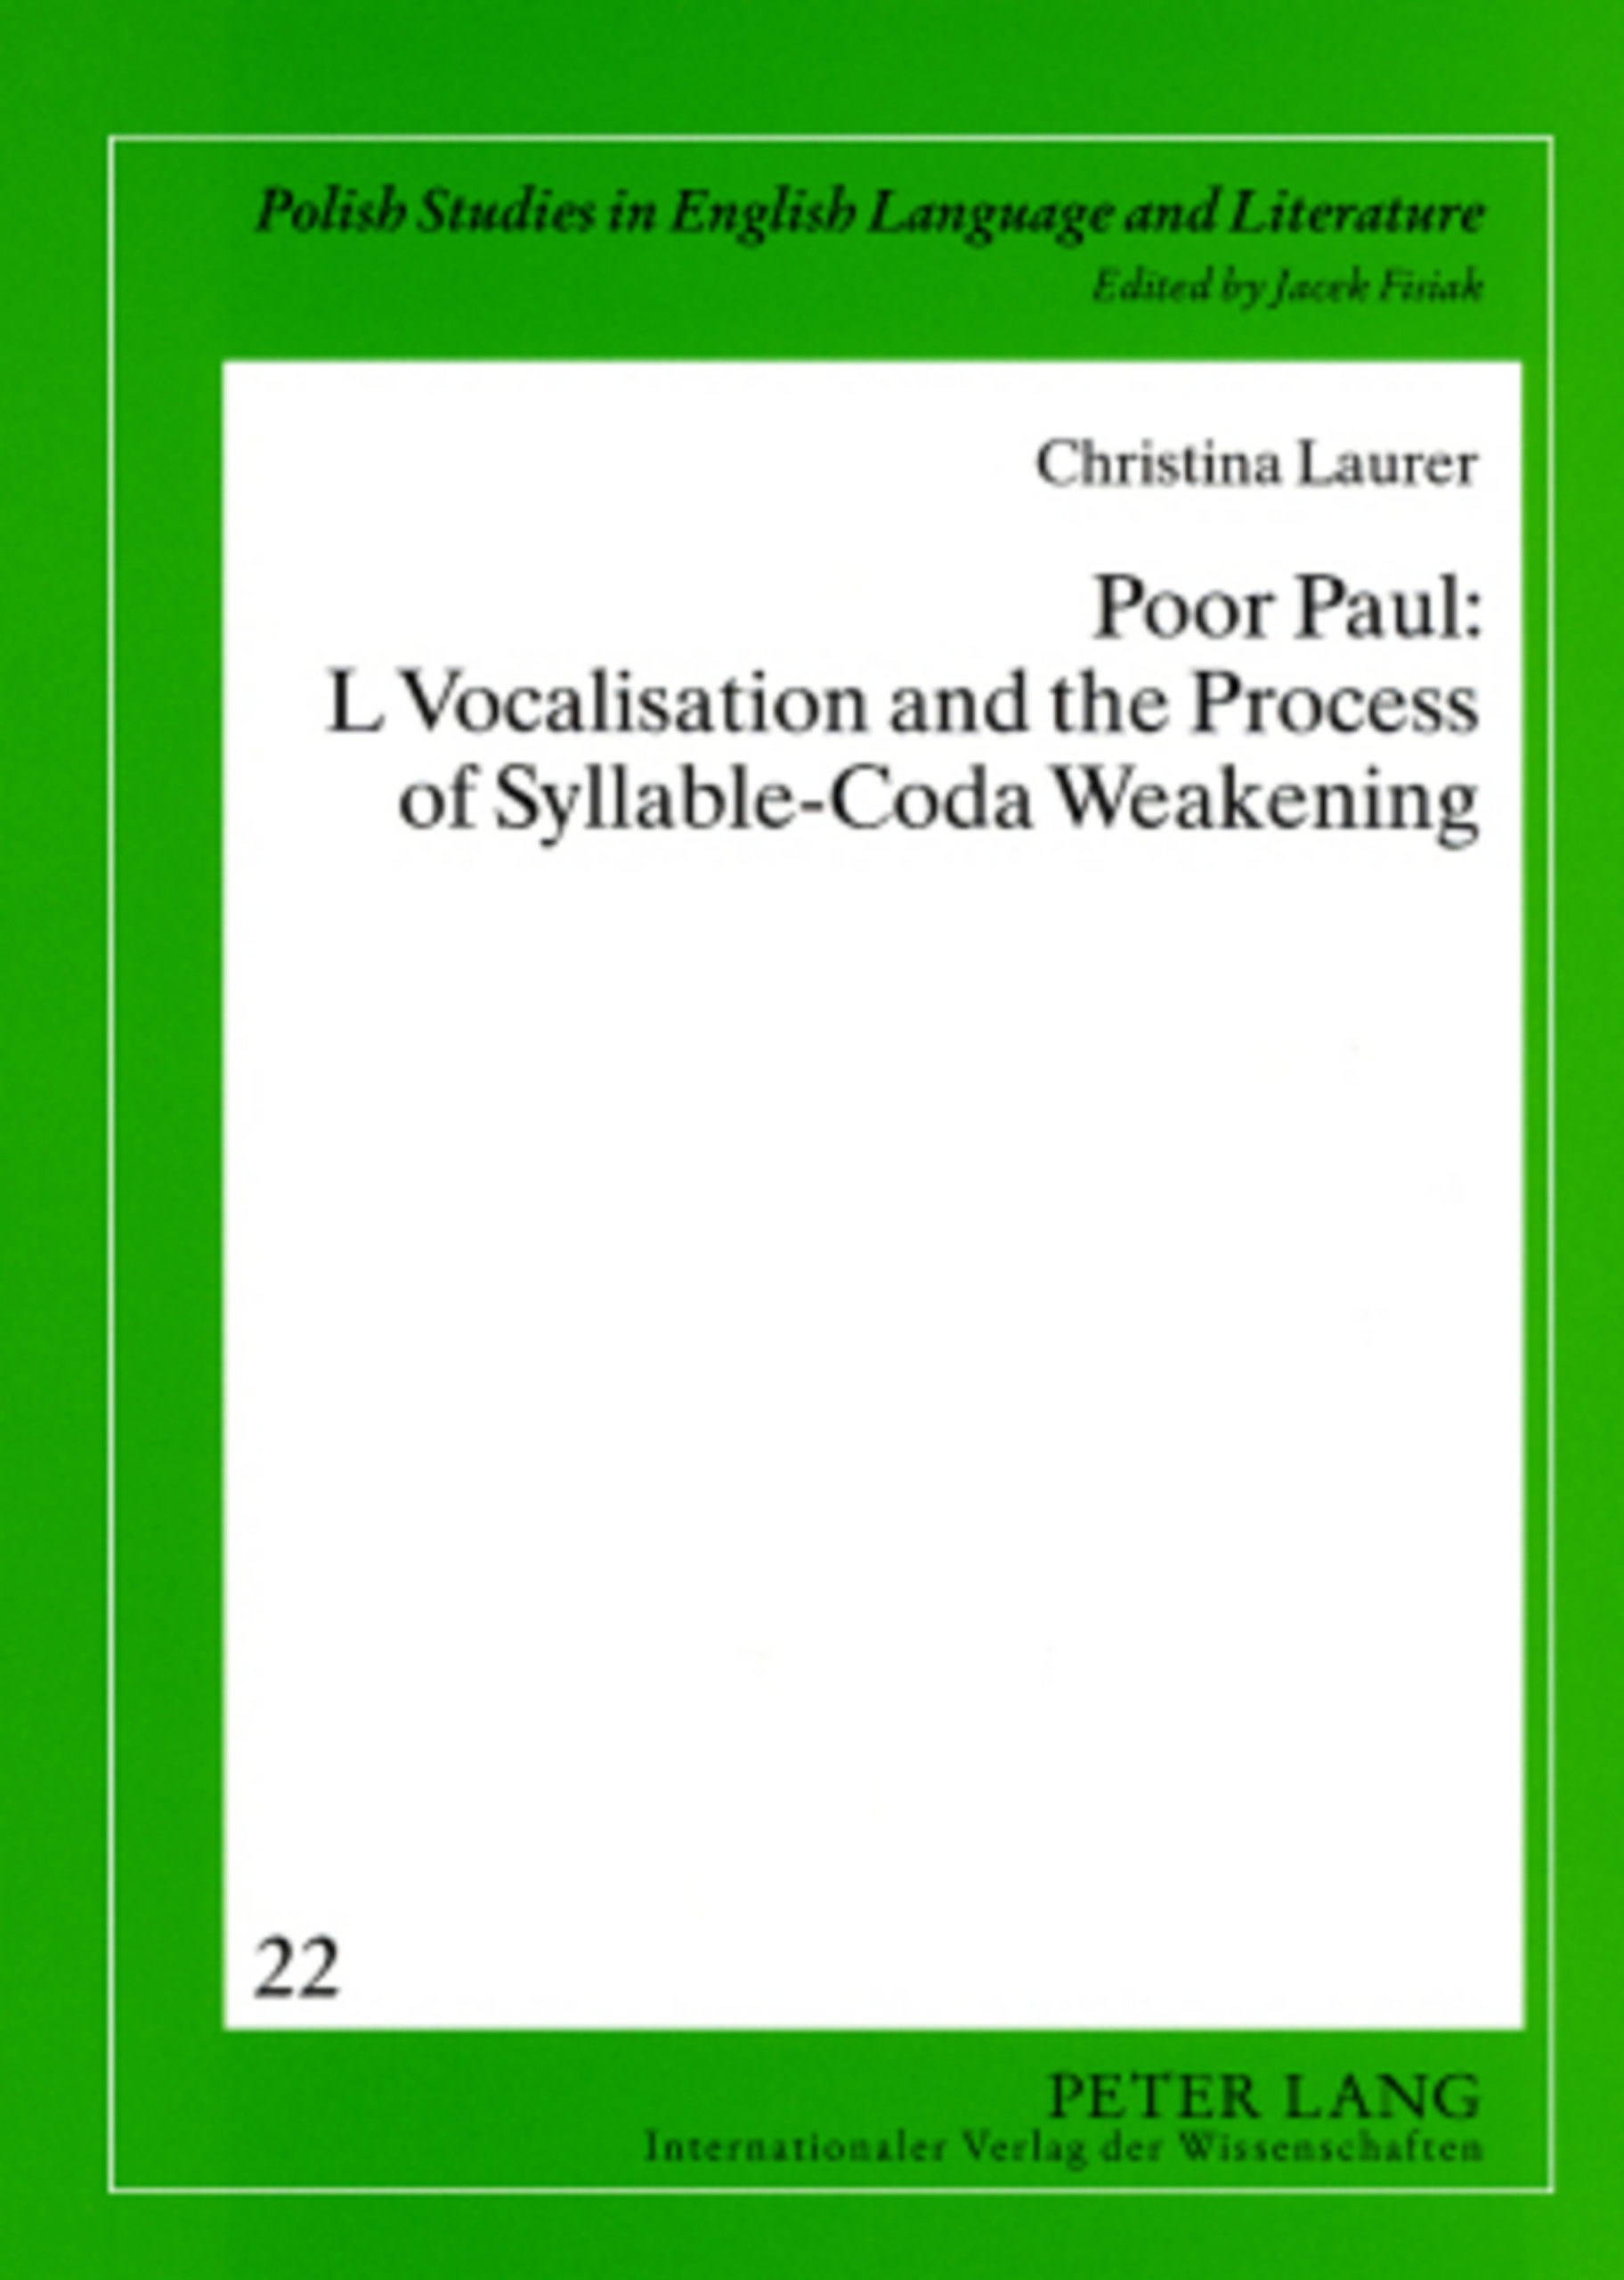 Title: Poor Paul: L Vocalisation and the Process of Syllable-Coda Weakening